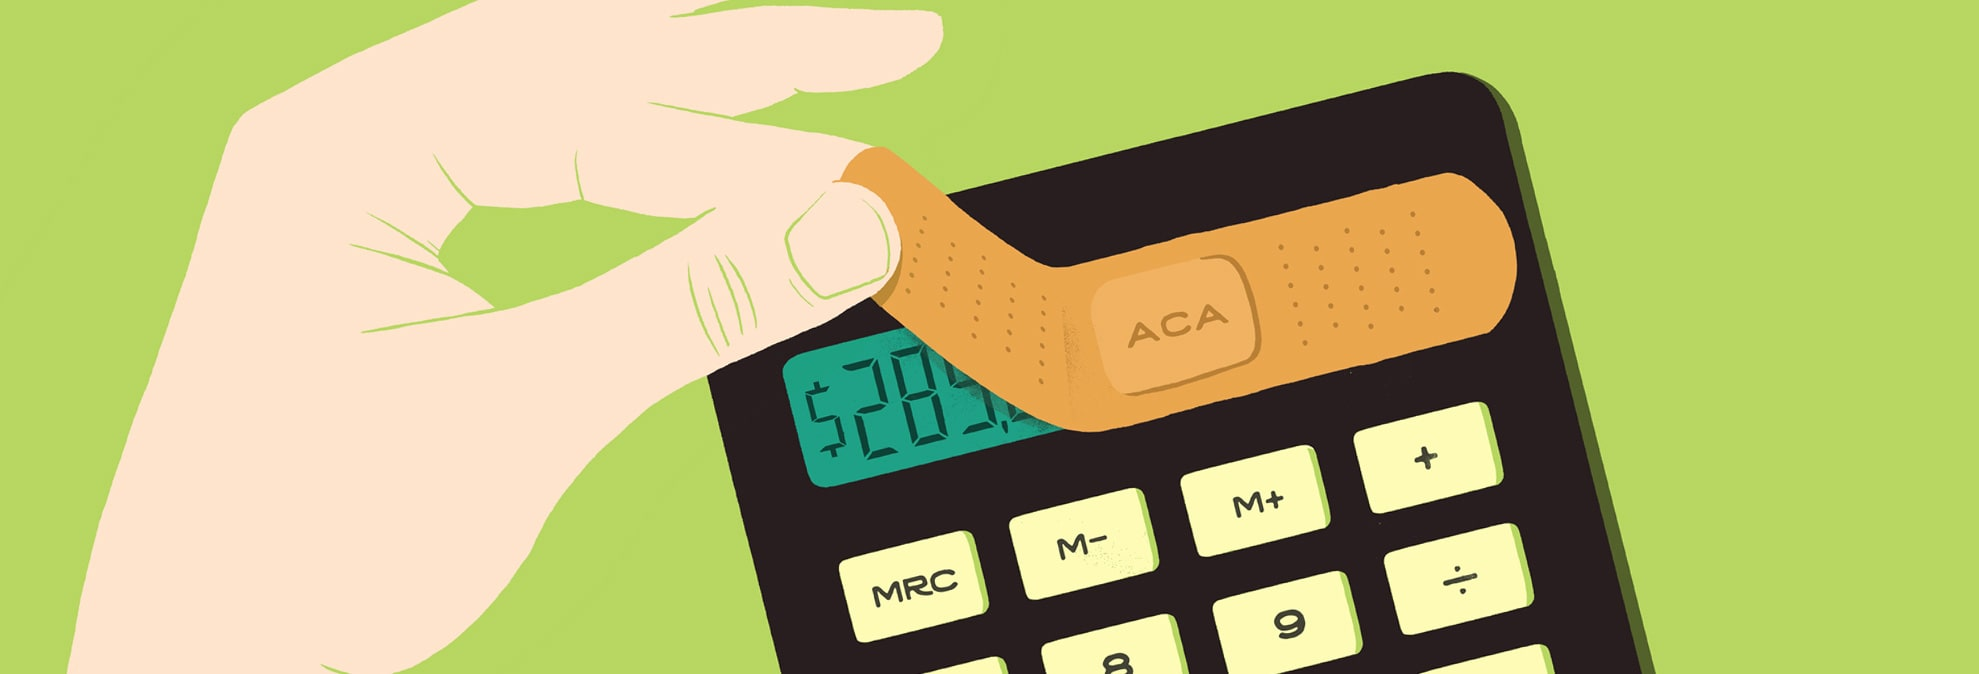 Affordable Care Act Drove Down Personal Bankruptcy Consumer Reports Repairing Your Old Equipment Can Lead To Substantial Savings